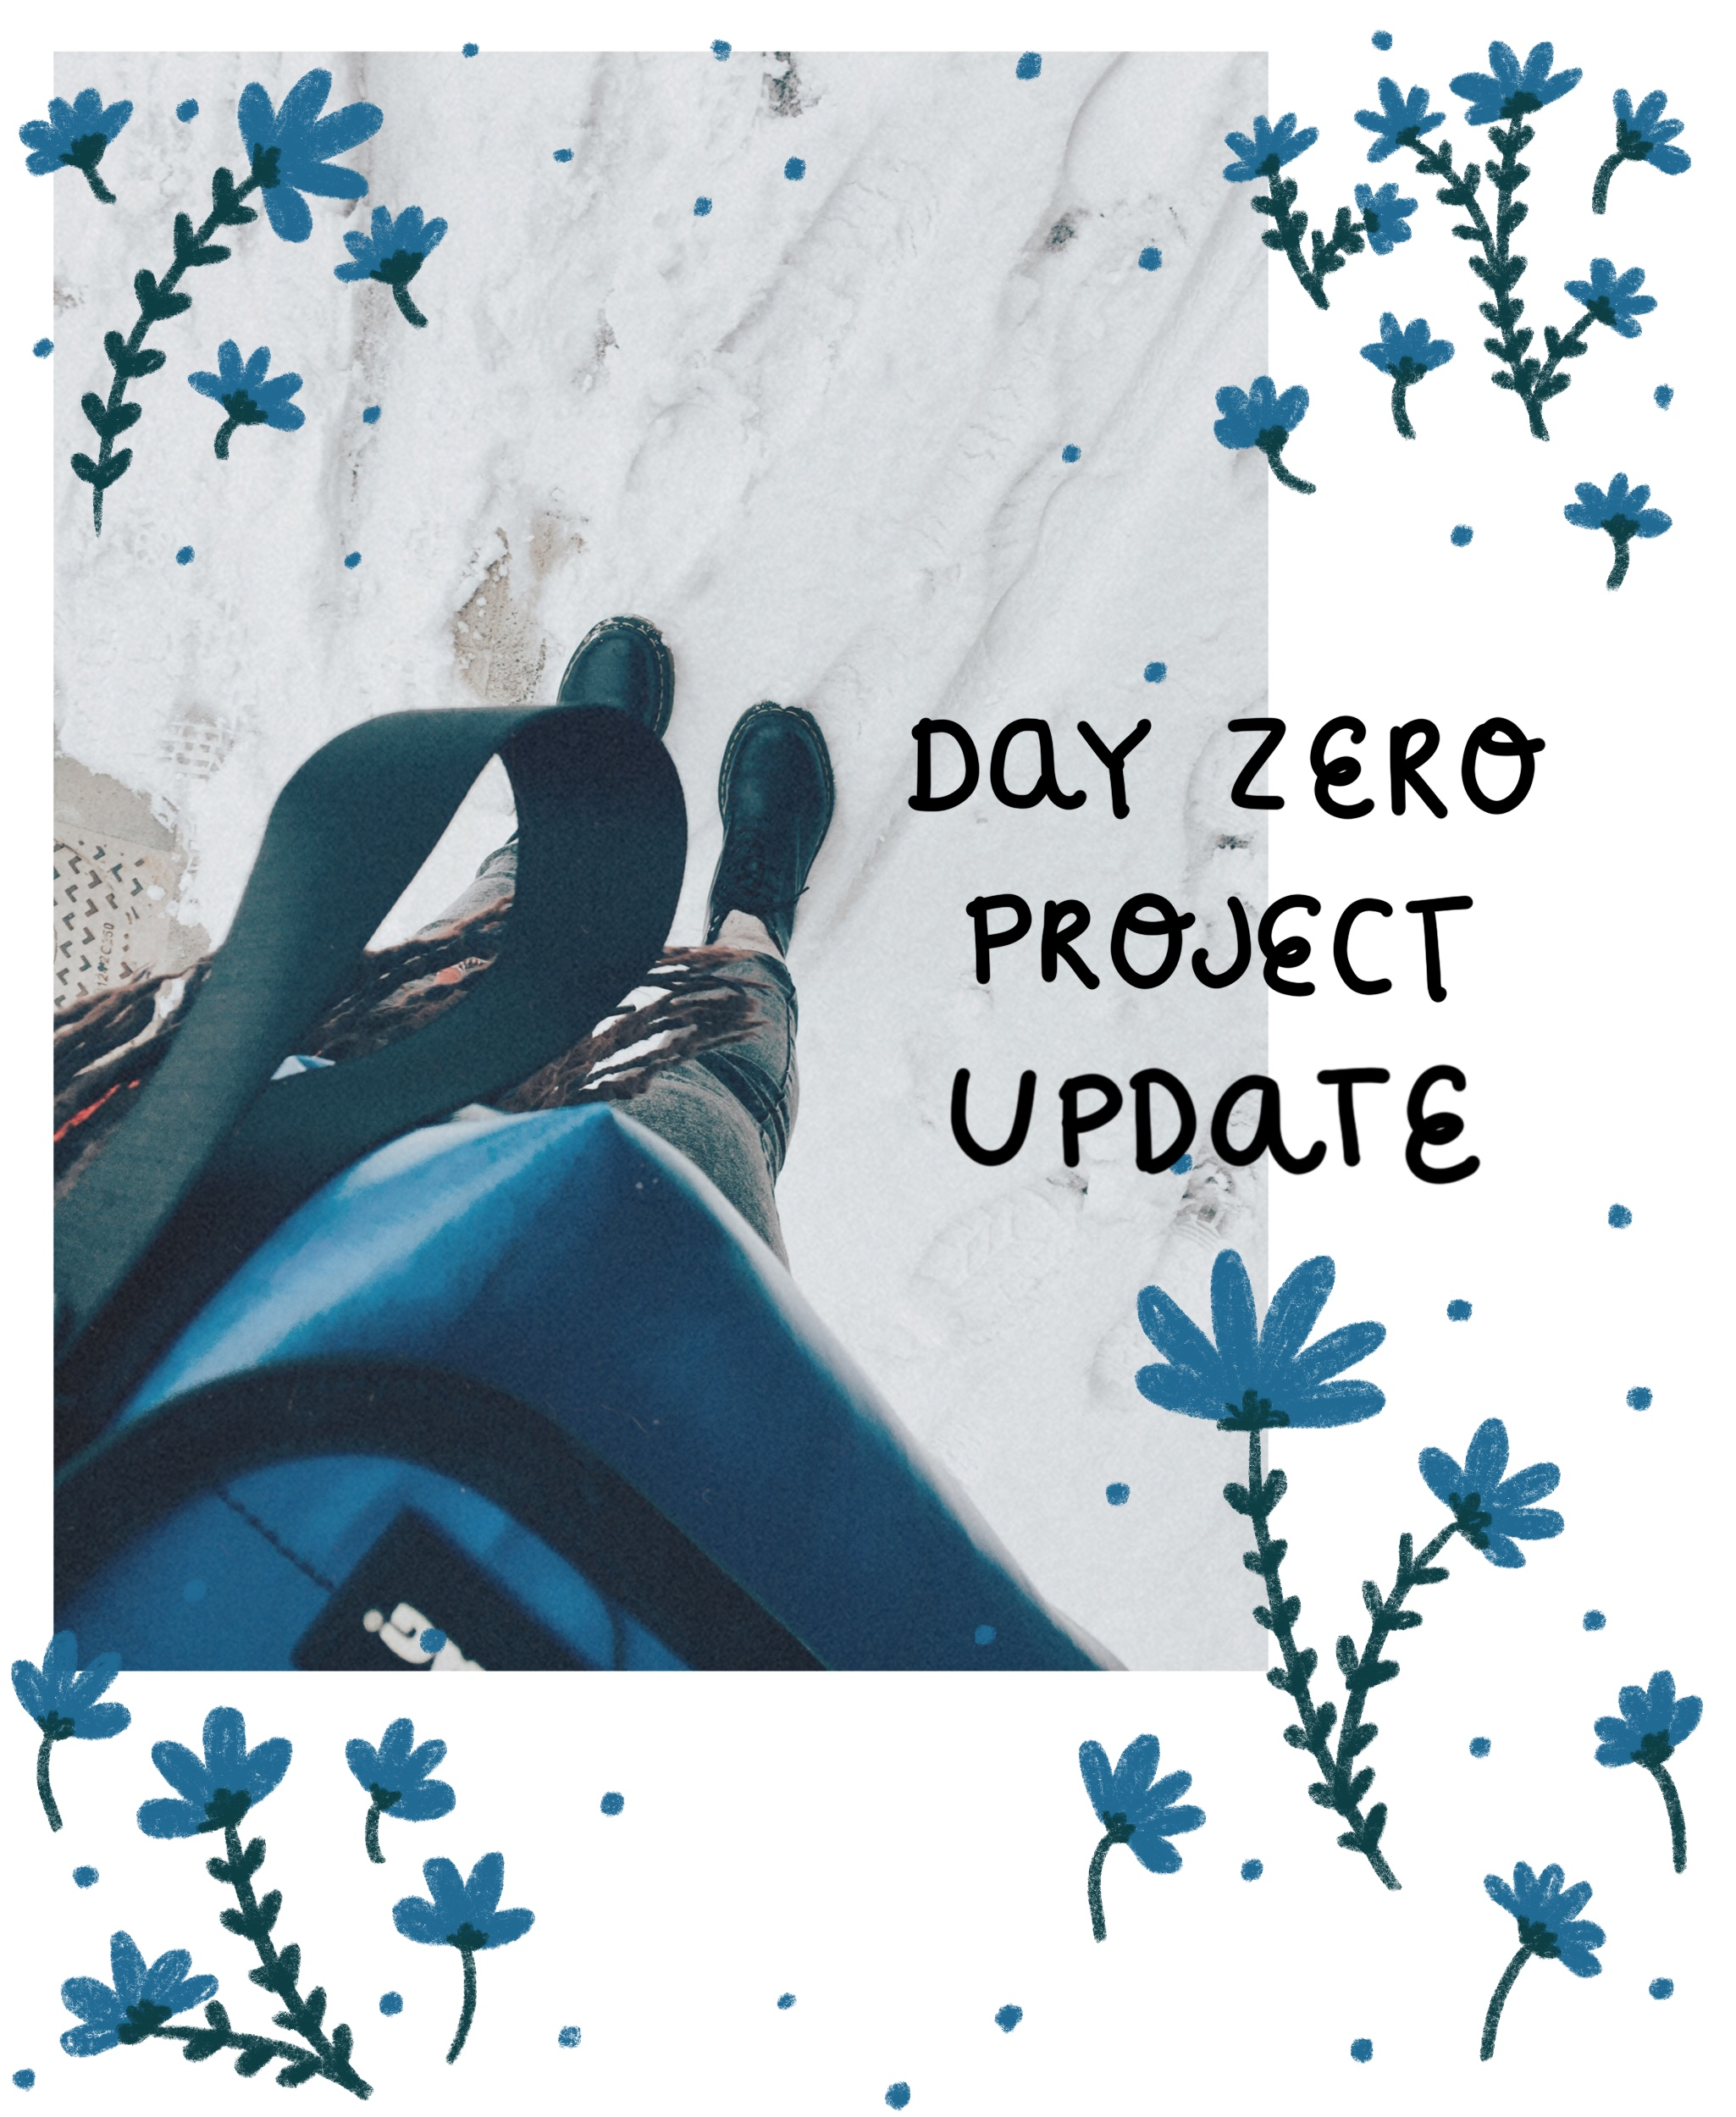 Day zero project | Update 12